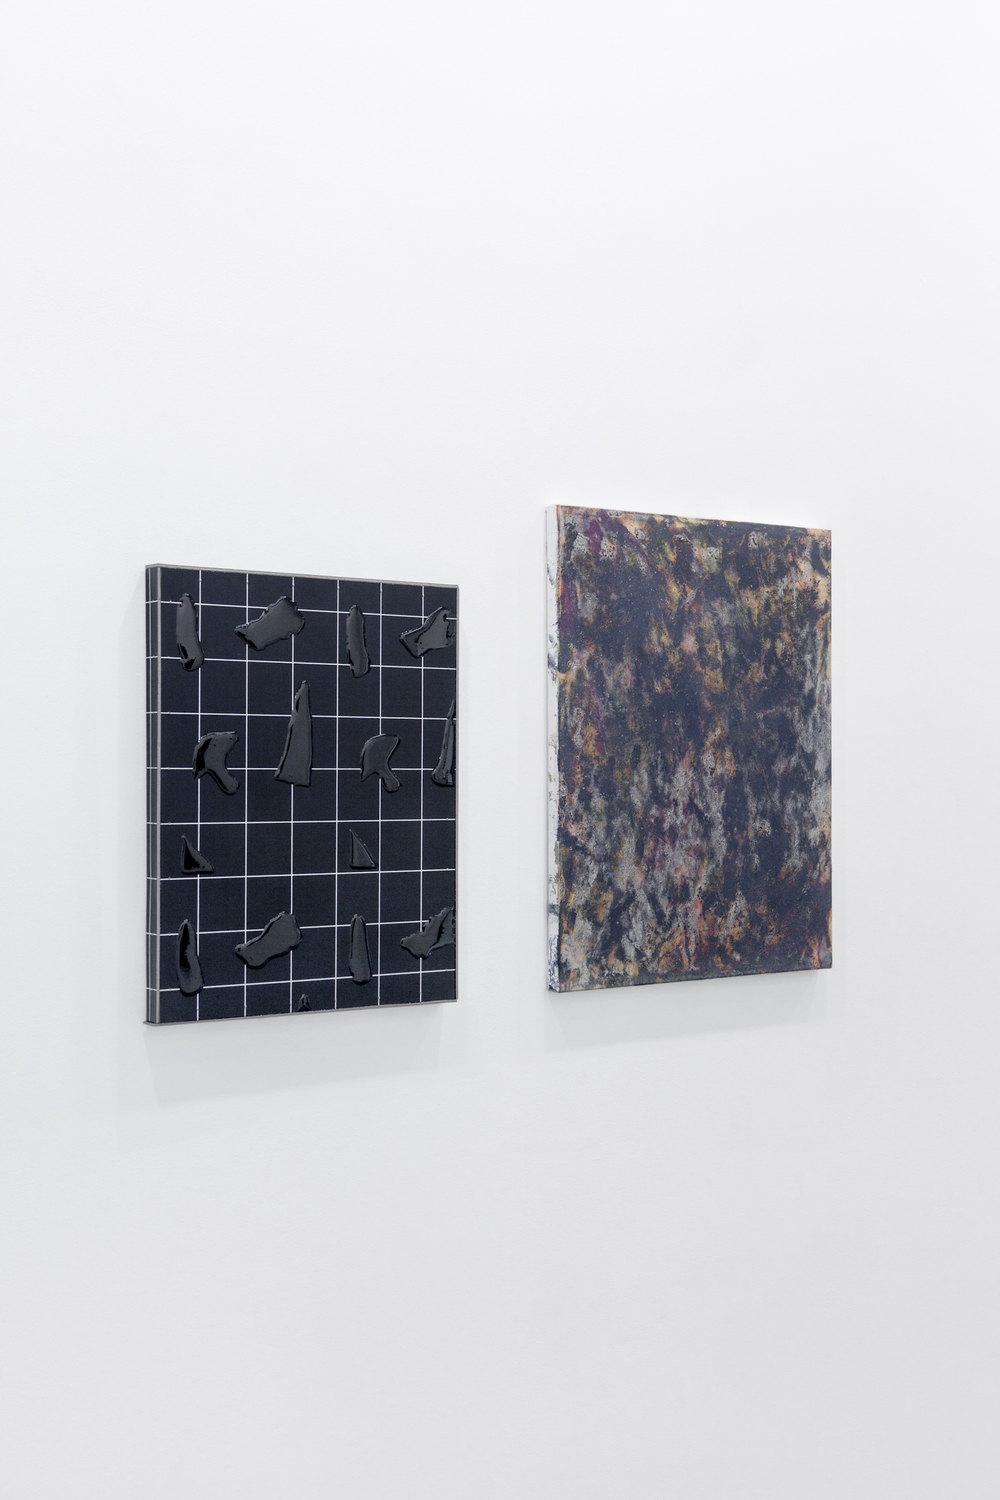 Olivier Kosta-Théfaine, Paysage/Fragments #4 (Black), 2015 and Nicholas Pilato, Untitled, 2015.